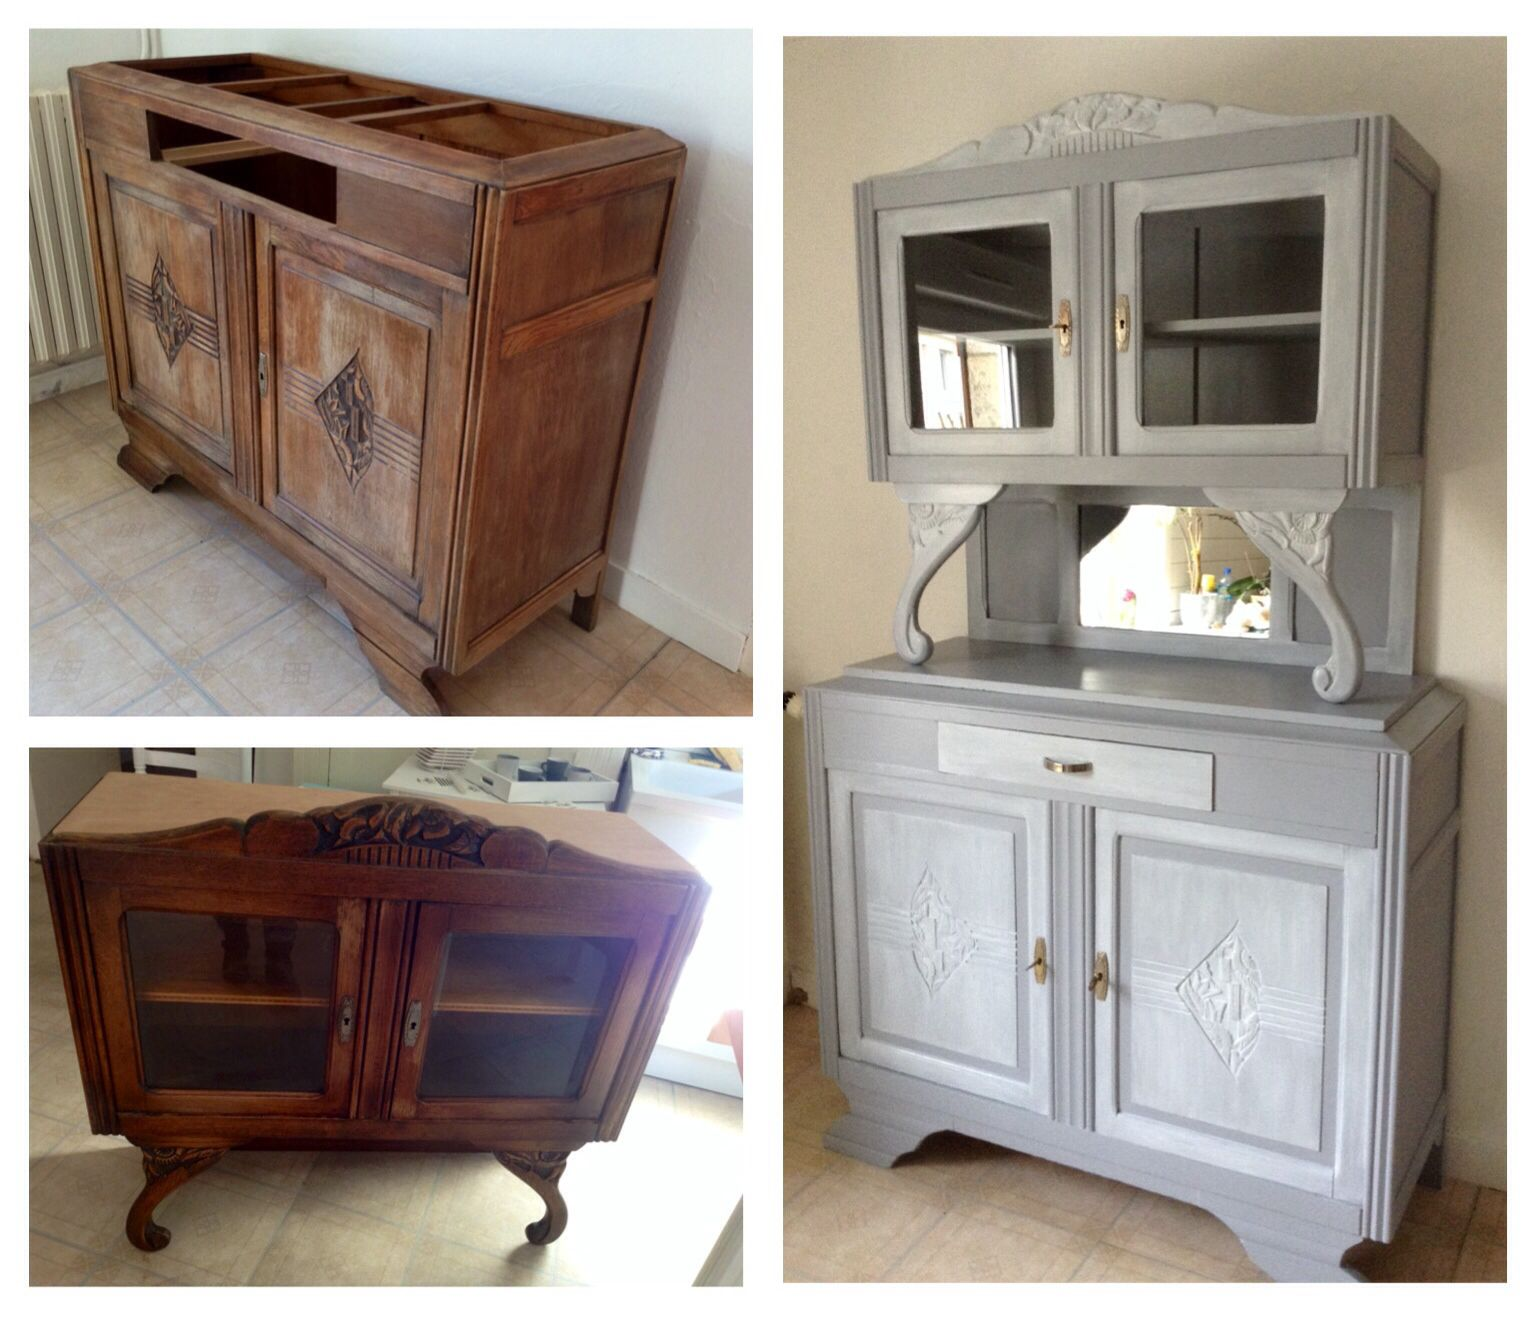 Relooking Vaisselier Relooking Buffet Des Années 30 Furniture Repurposed Pinterest